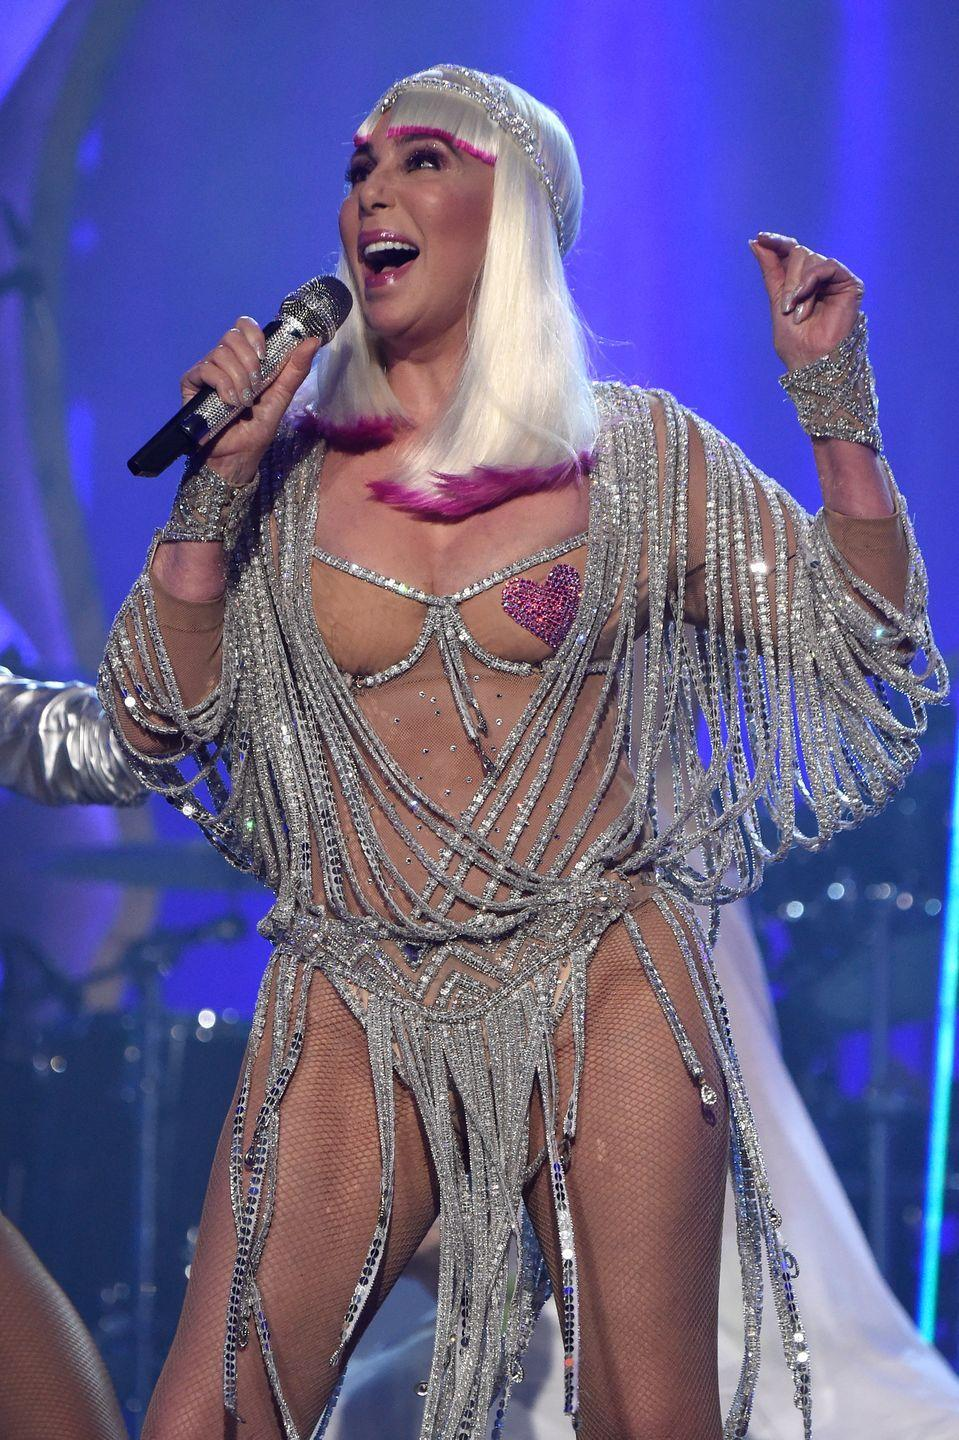 <p>Performing live at the Billboard Music Awards, where she received the Icon Award. </p>